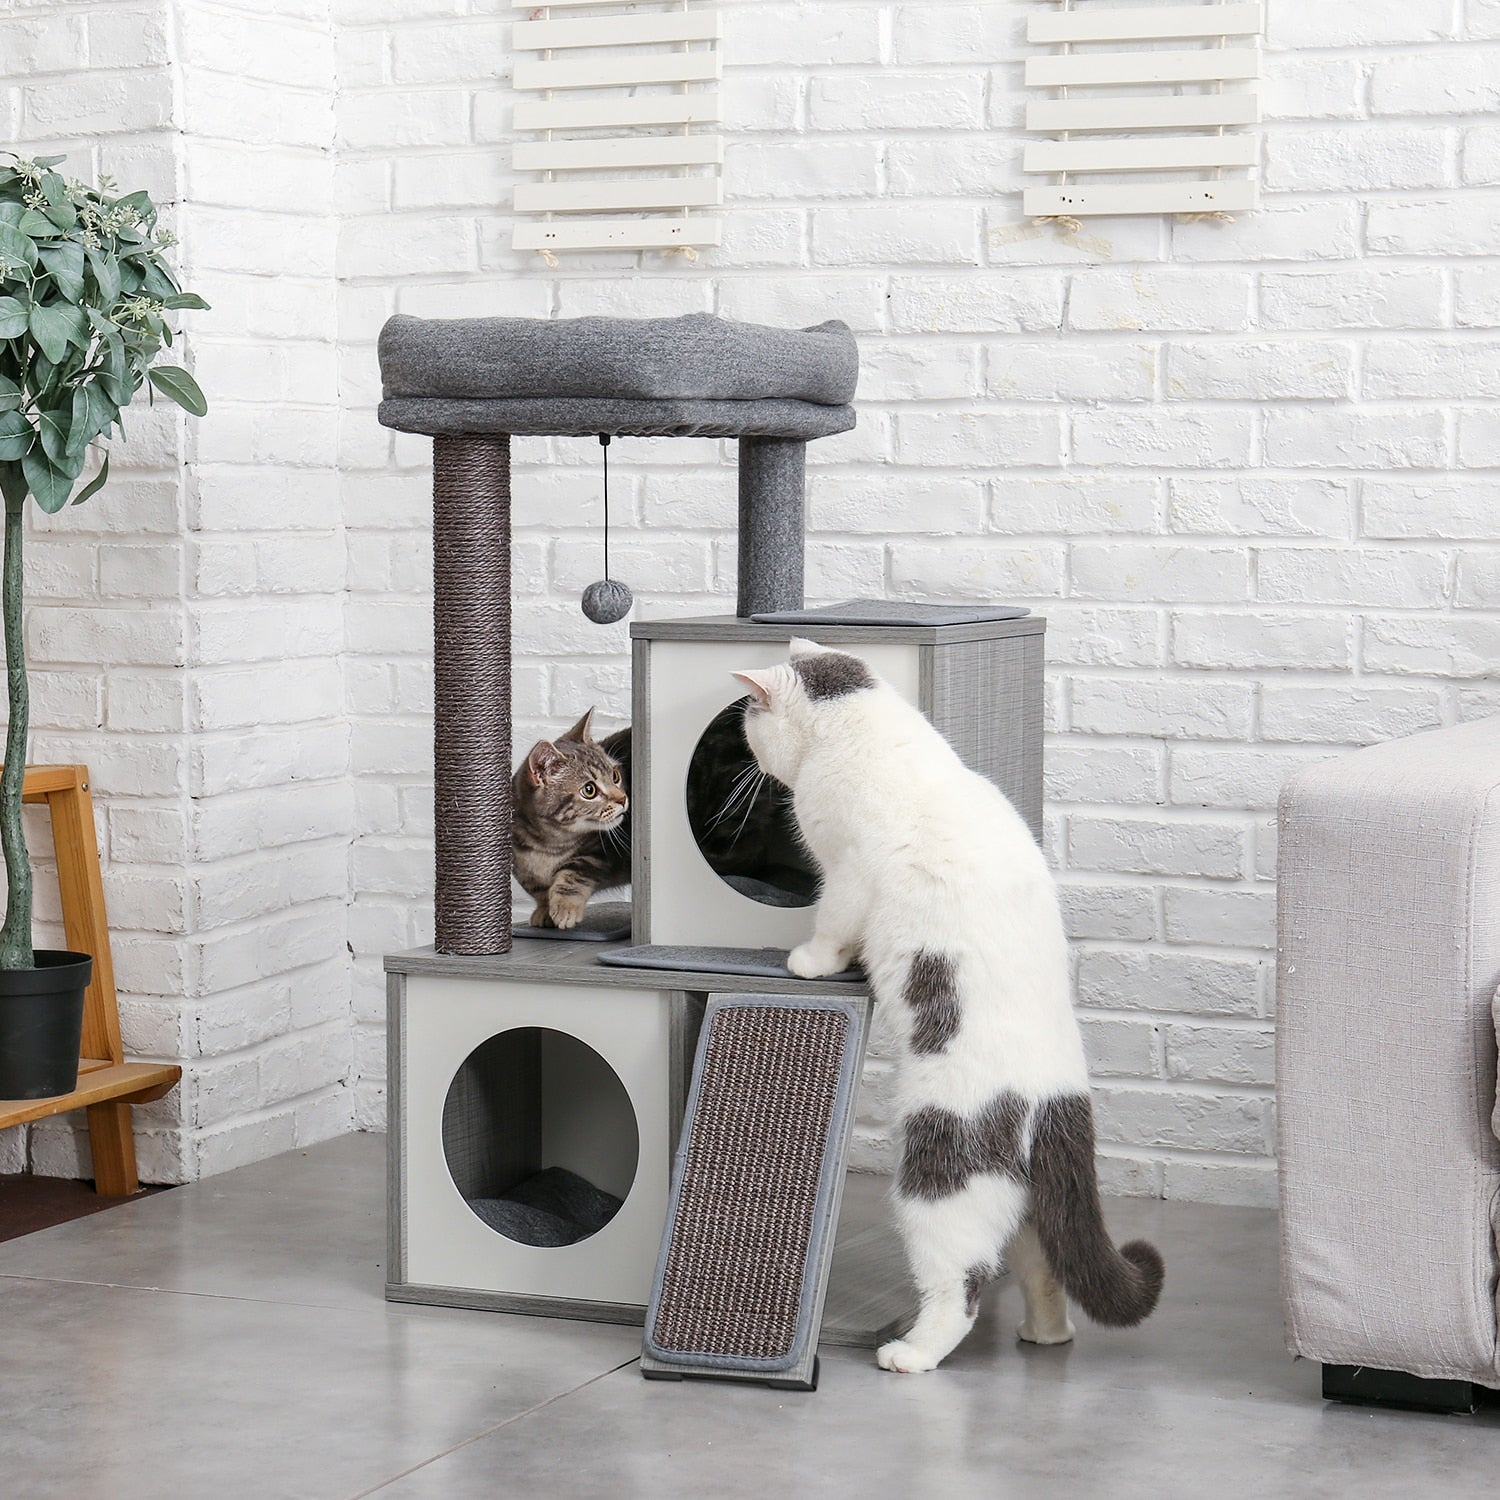 Luxury Modern Cat Tree with Sisal-Covered Scratching Posts | Cat Tower with 2 Spacious Perches and Various Scratching Pads